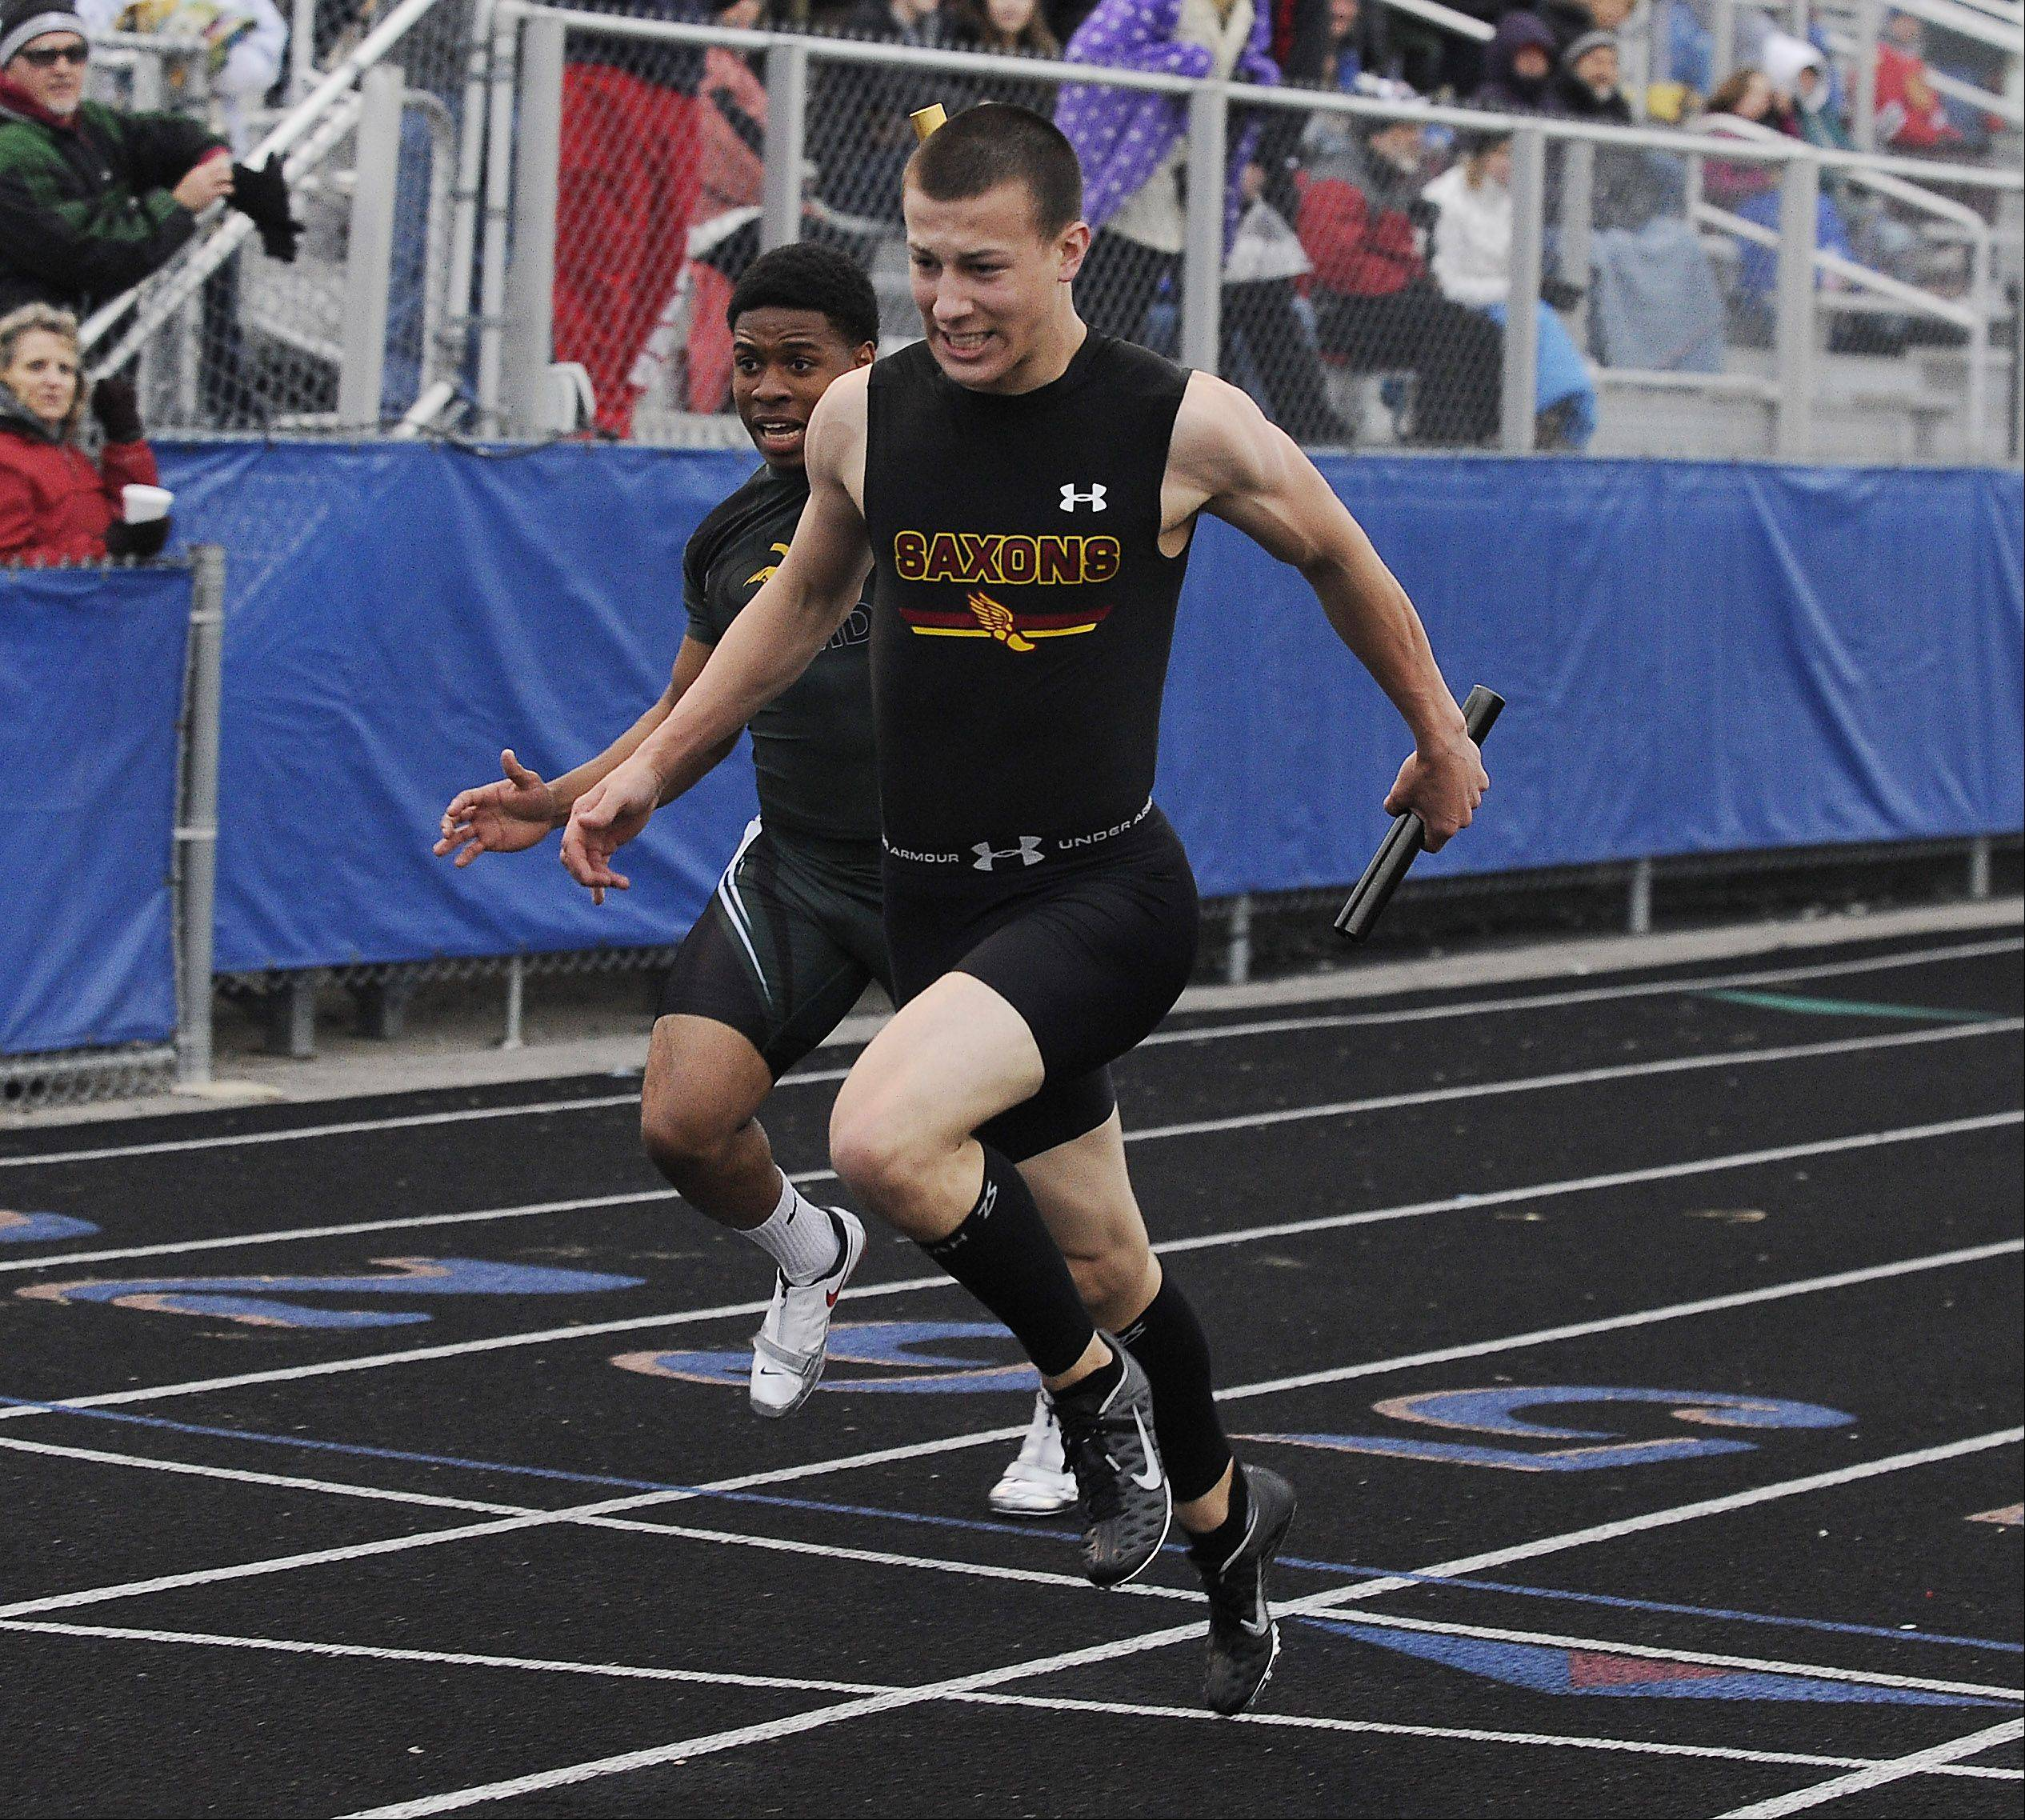 Mark Welsh/mwelsh@dailyherald.comTom Ciupka of Schaumburg takes the anchor leg of the winning 4x100-meter relay in the Mid-Suburban League meet at Hoffman Estates on Friday.